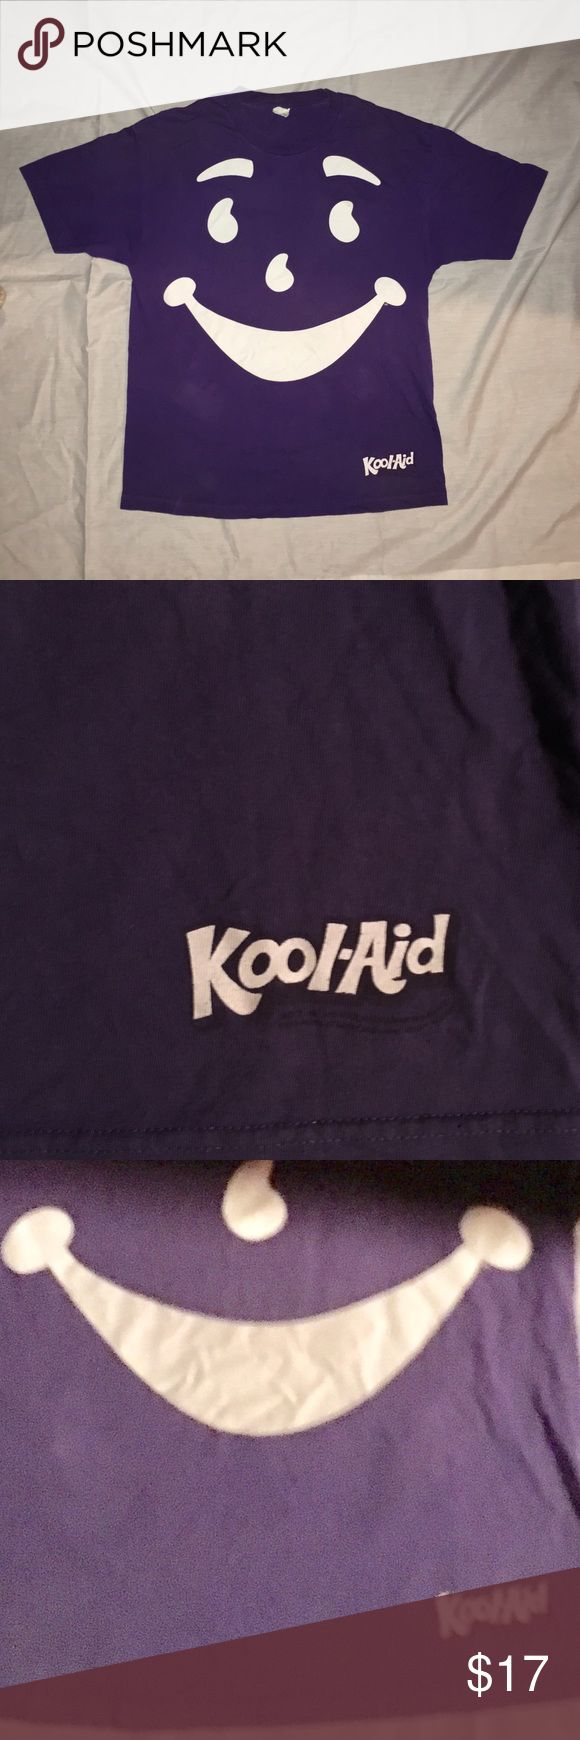 Old school kool-aid man t shirt Purple kool-aid man t shirt. No holes stains or pulls. It has some fading - see third pic for more accurate color. Alstyle brand - retro hipster vintage Shirts Tees - Short Sleeve